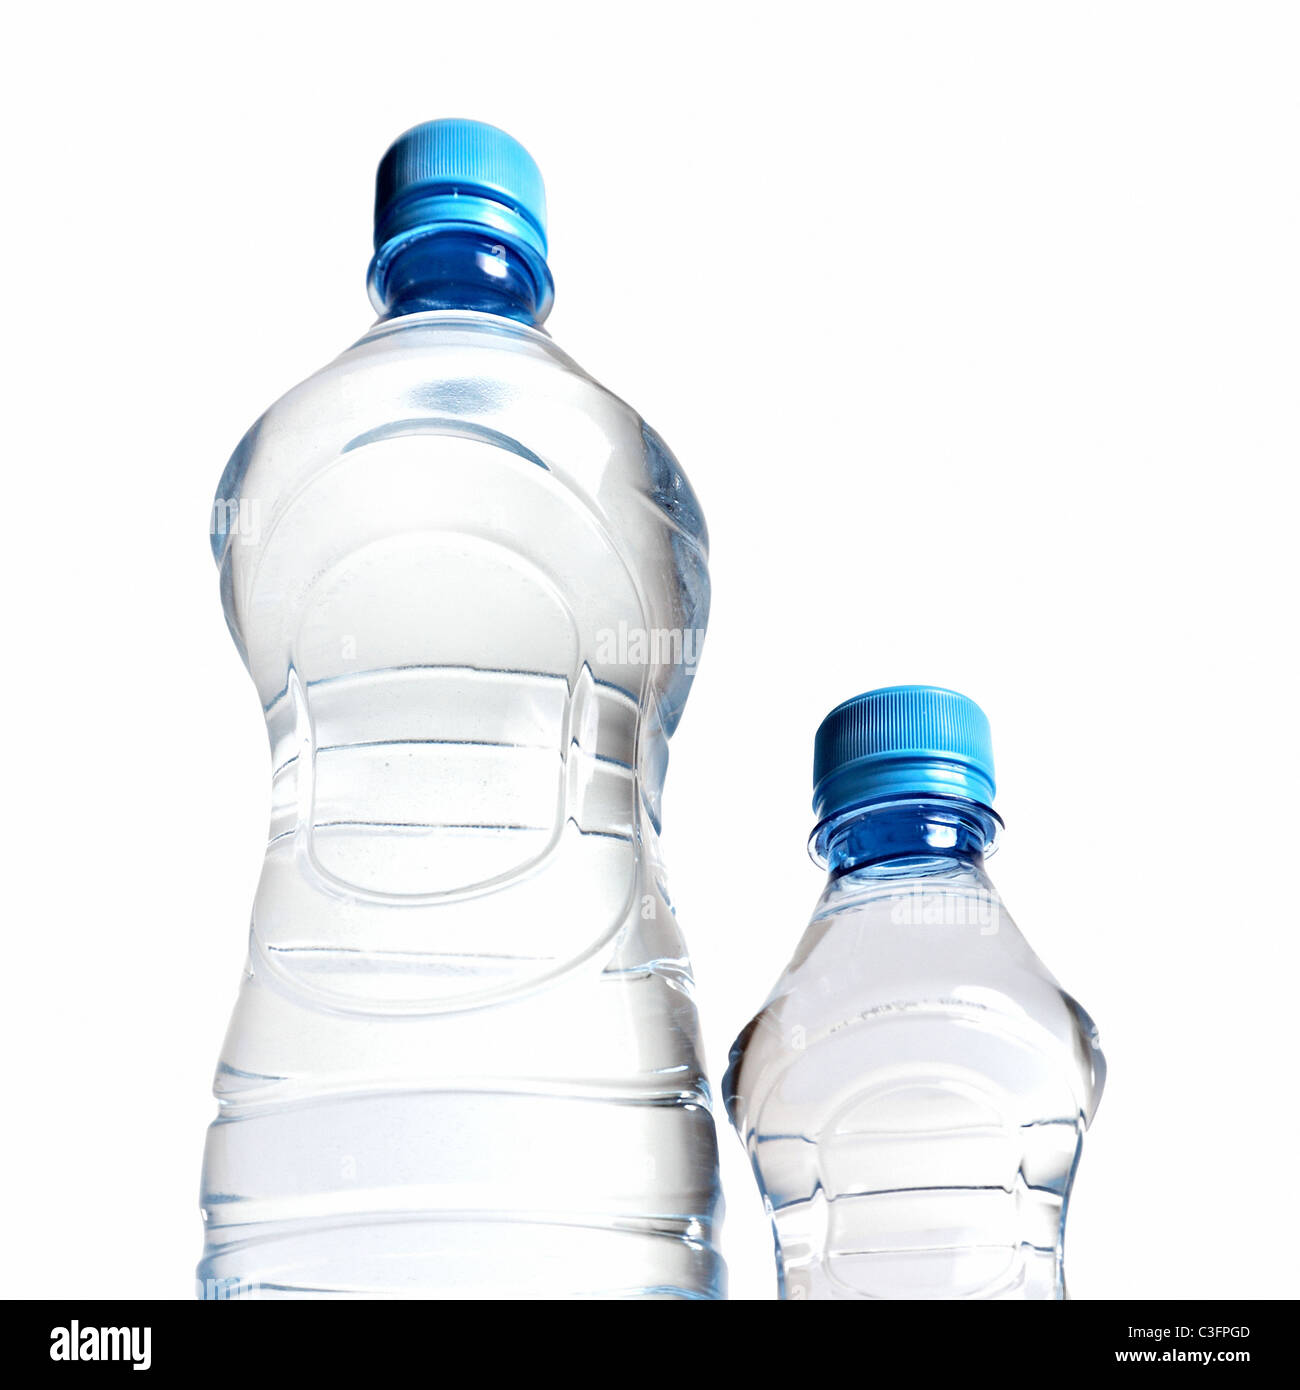 view on the water bottles from below - Stock Image